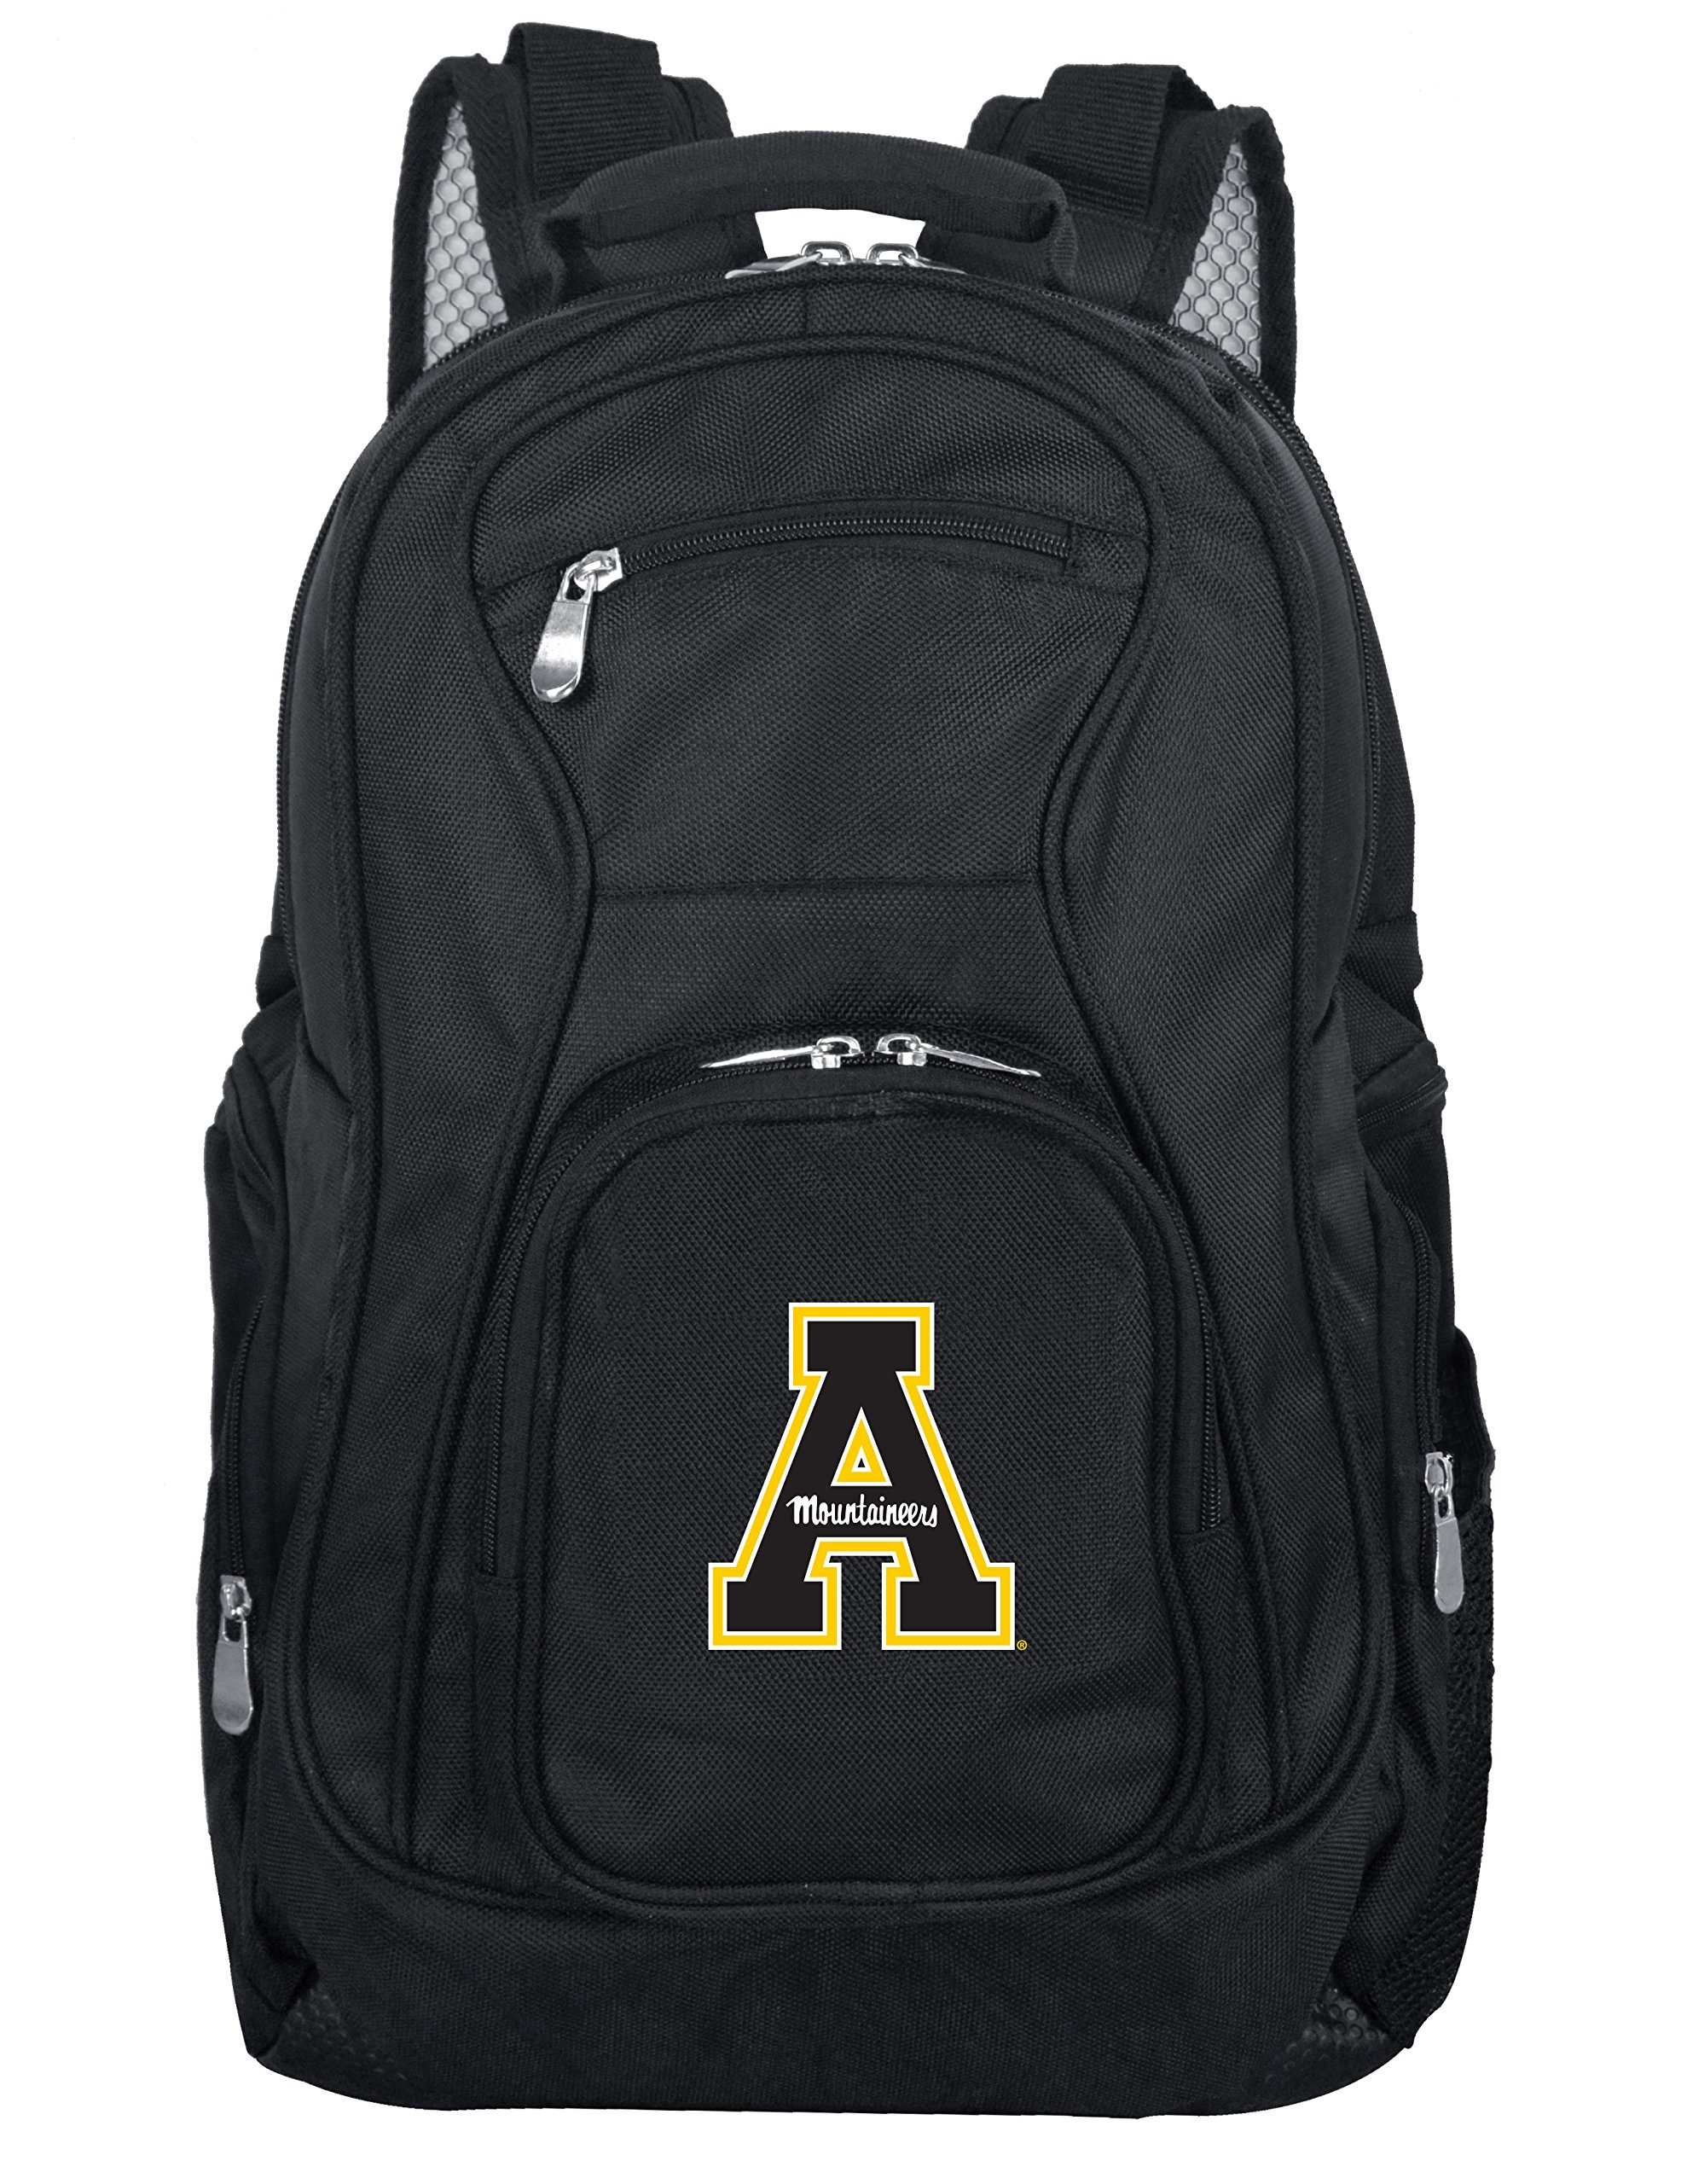 Denco NCAA Appalachian State Mountaineers Voyager Laptop Backpack, 19-inches, Black